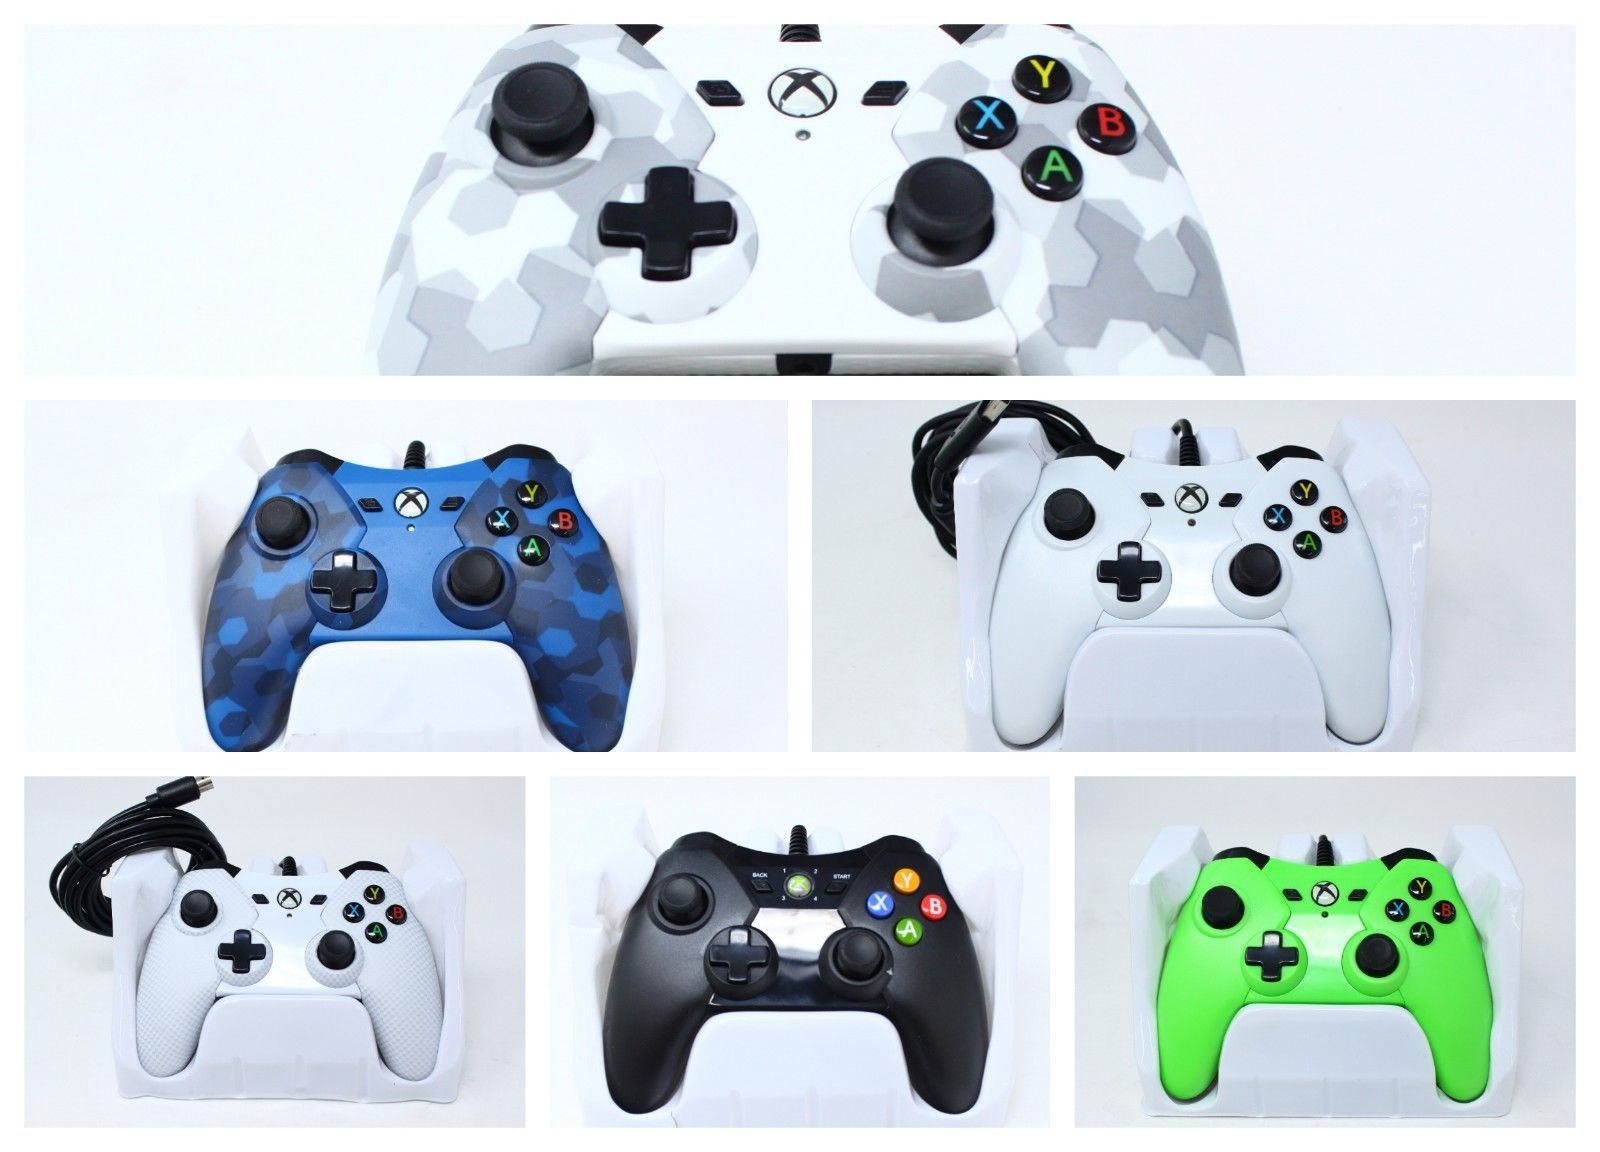 hight resolution of power a wired gaming controller for xbox one and windows 10 multi colors buy it now only 17 99 on ebay video accessories power wired gaming